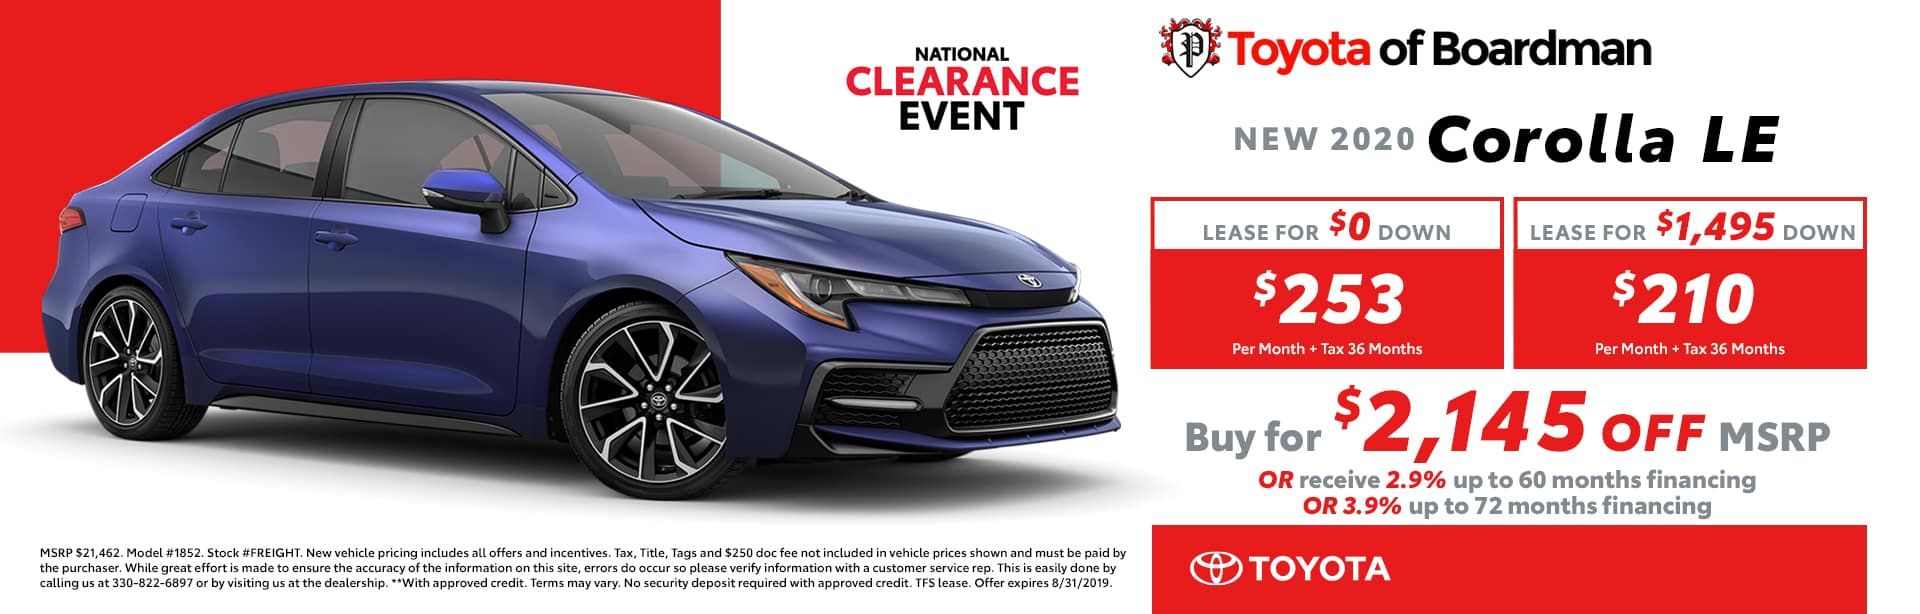 August special on the 2019 Toyota Corolla